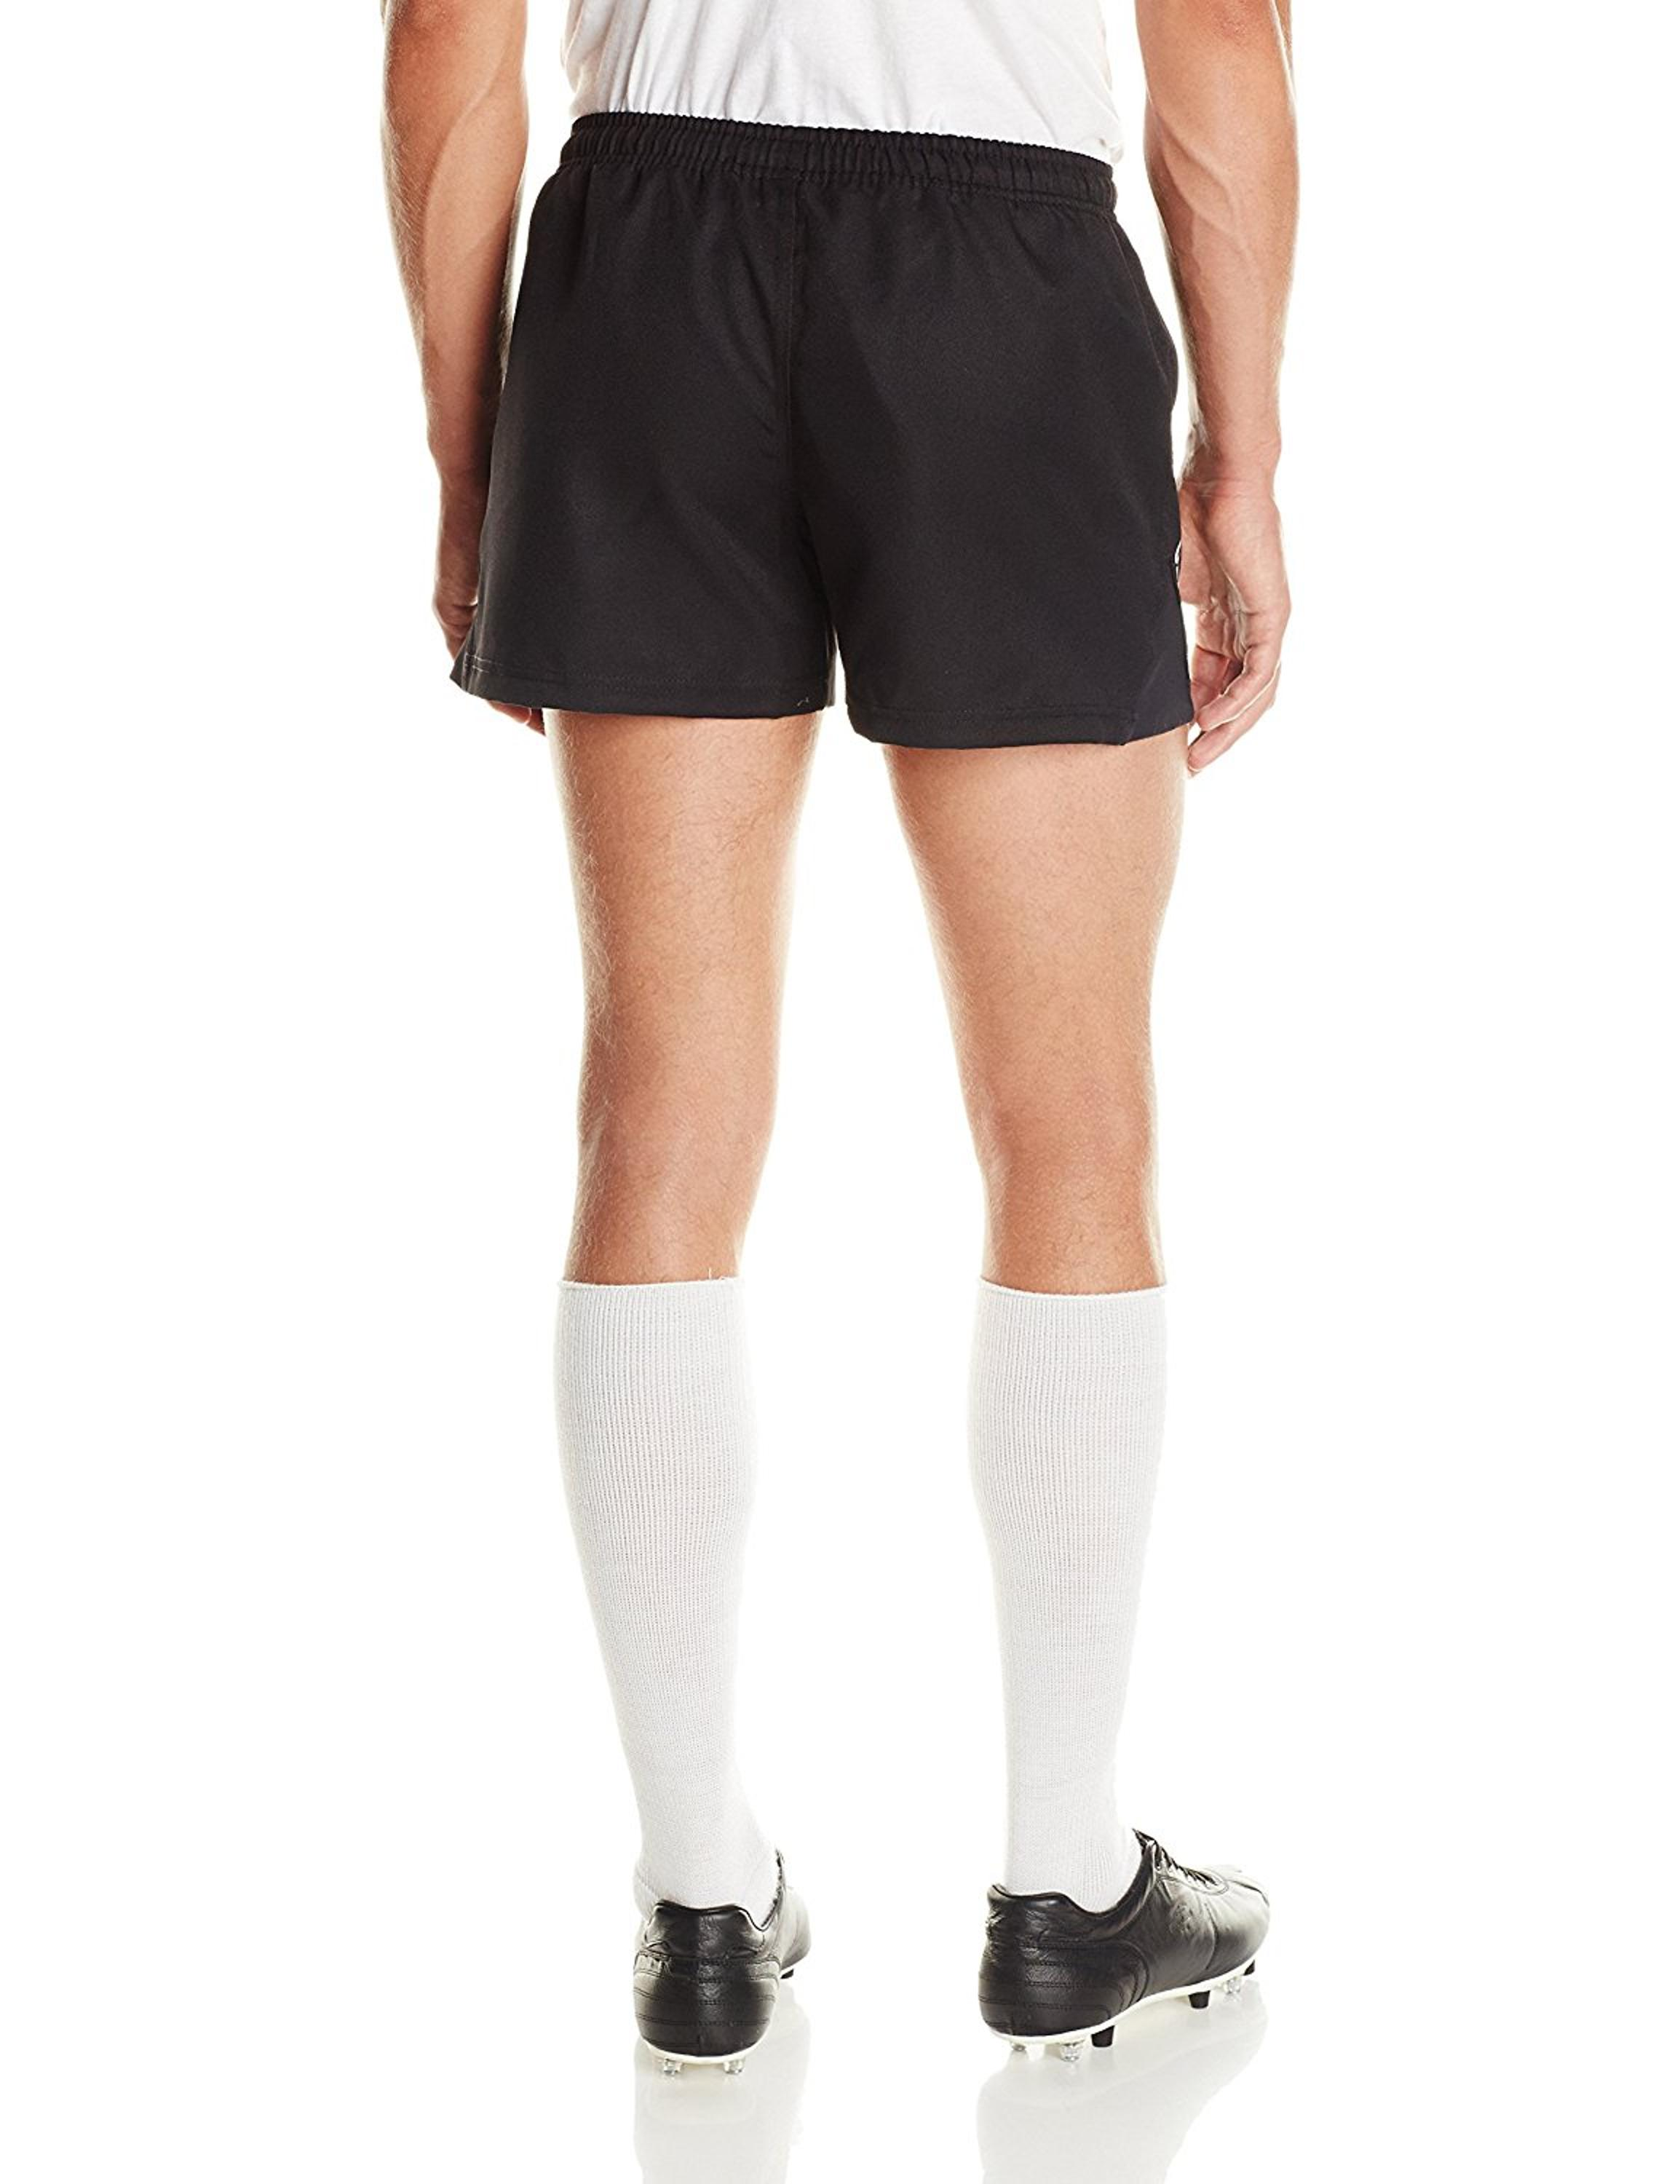 rugby shorts wholesale (5).jpg